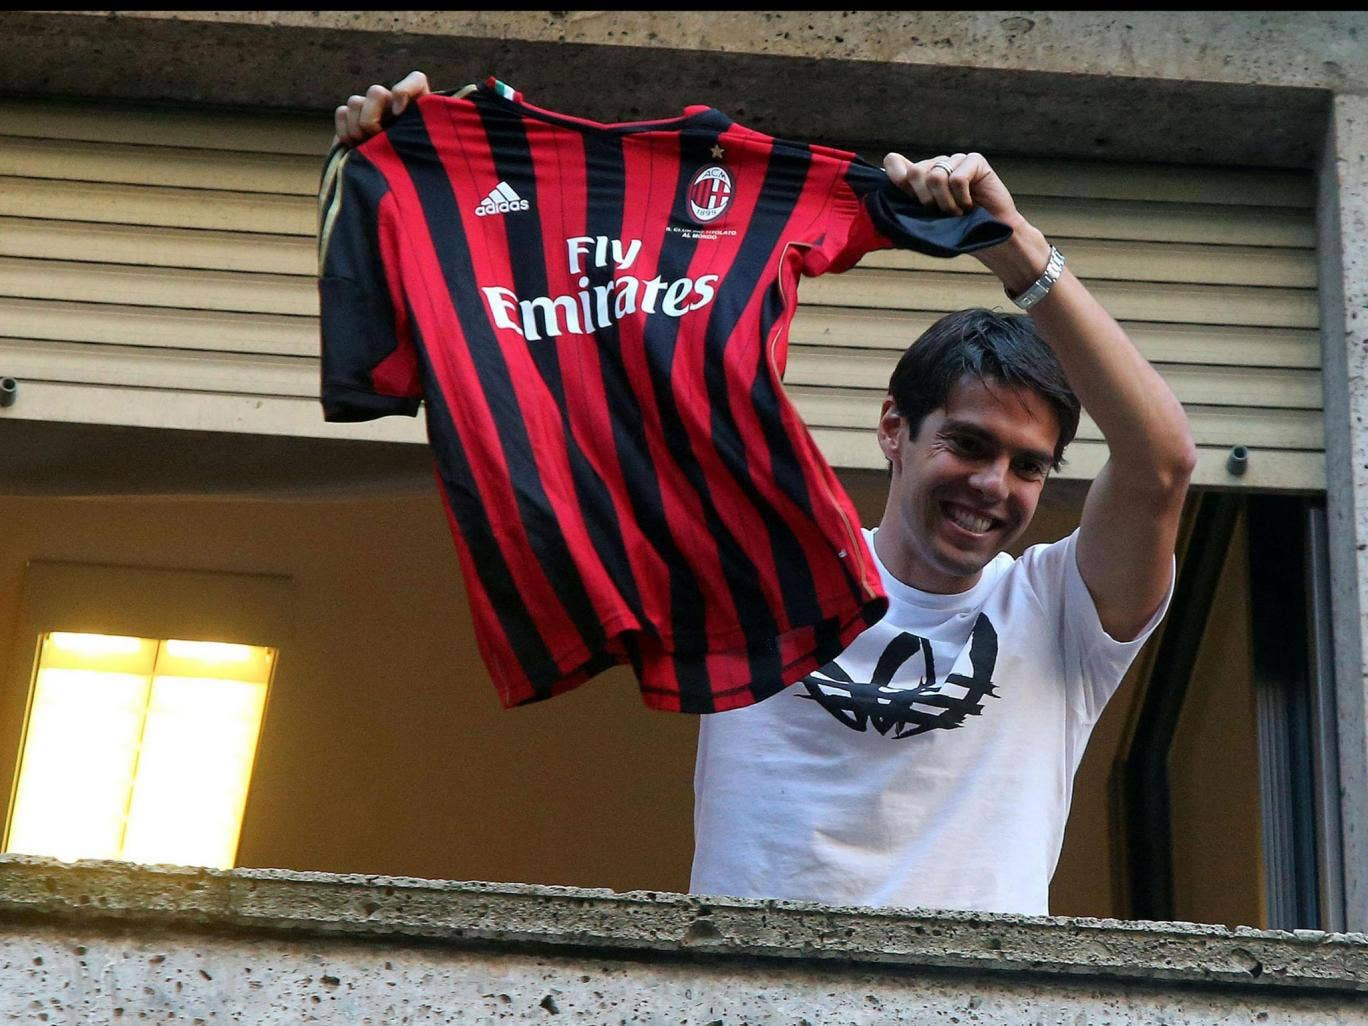 The Brazilian attacking midfielder Kaka has completed his return to Milan after four unhappy years at Real Madrid